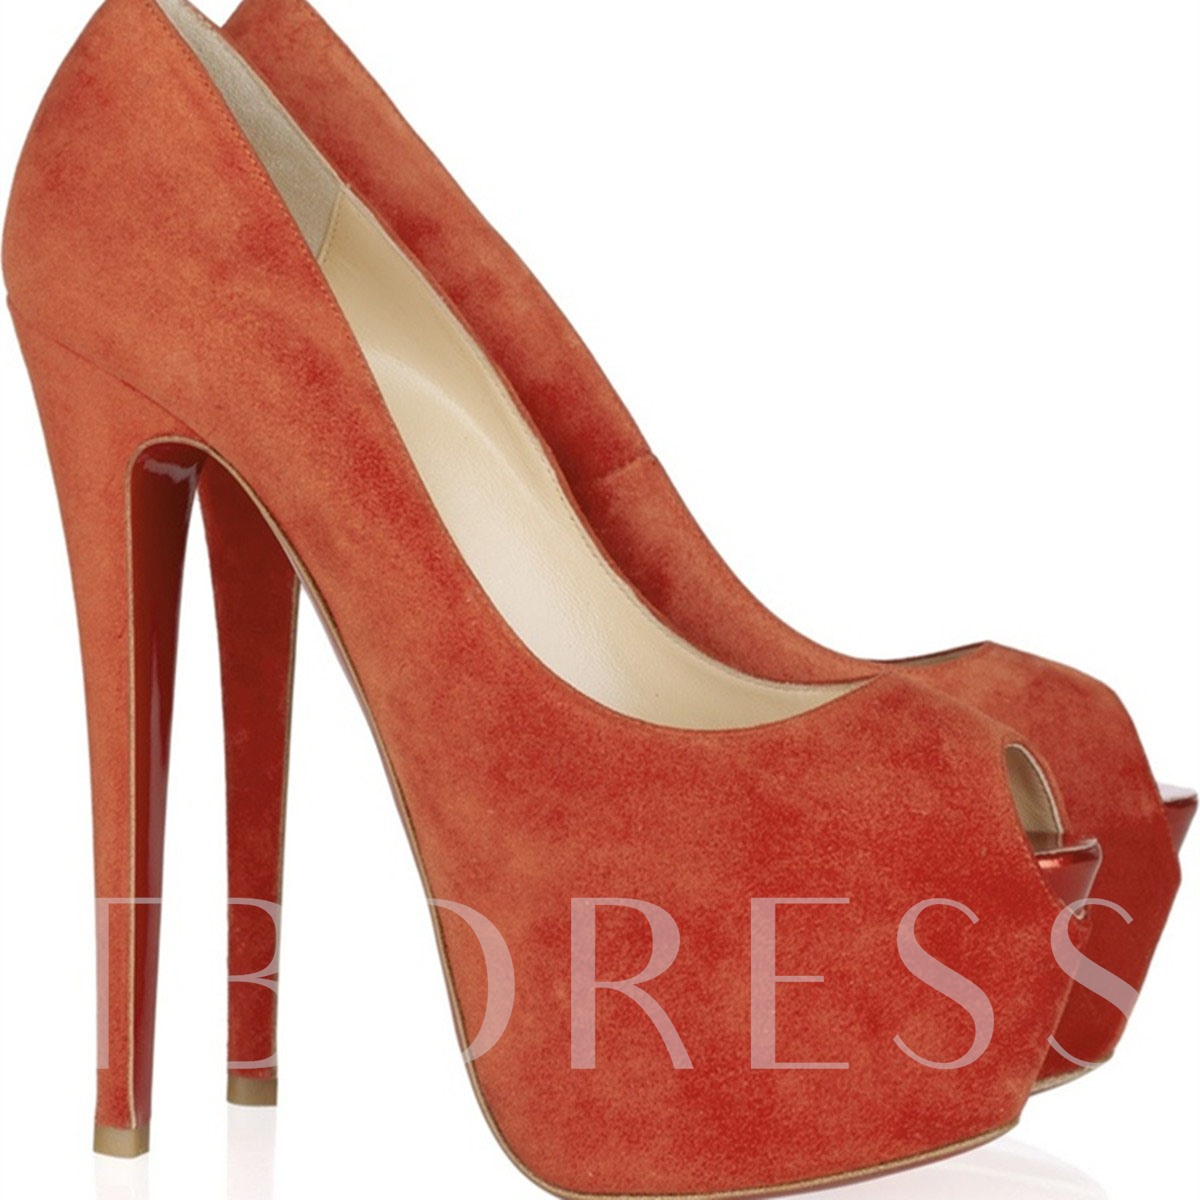 Platform Peep Toe Stiletto Heel Women's Pumps